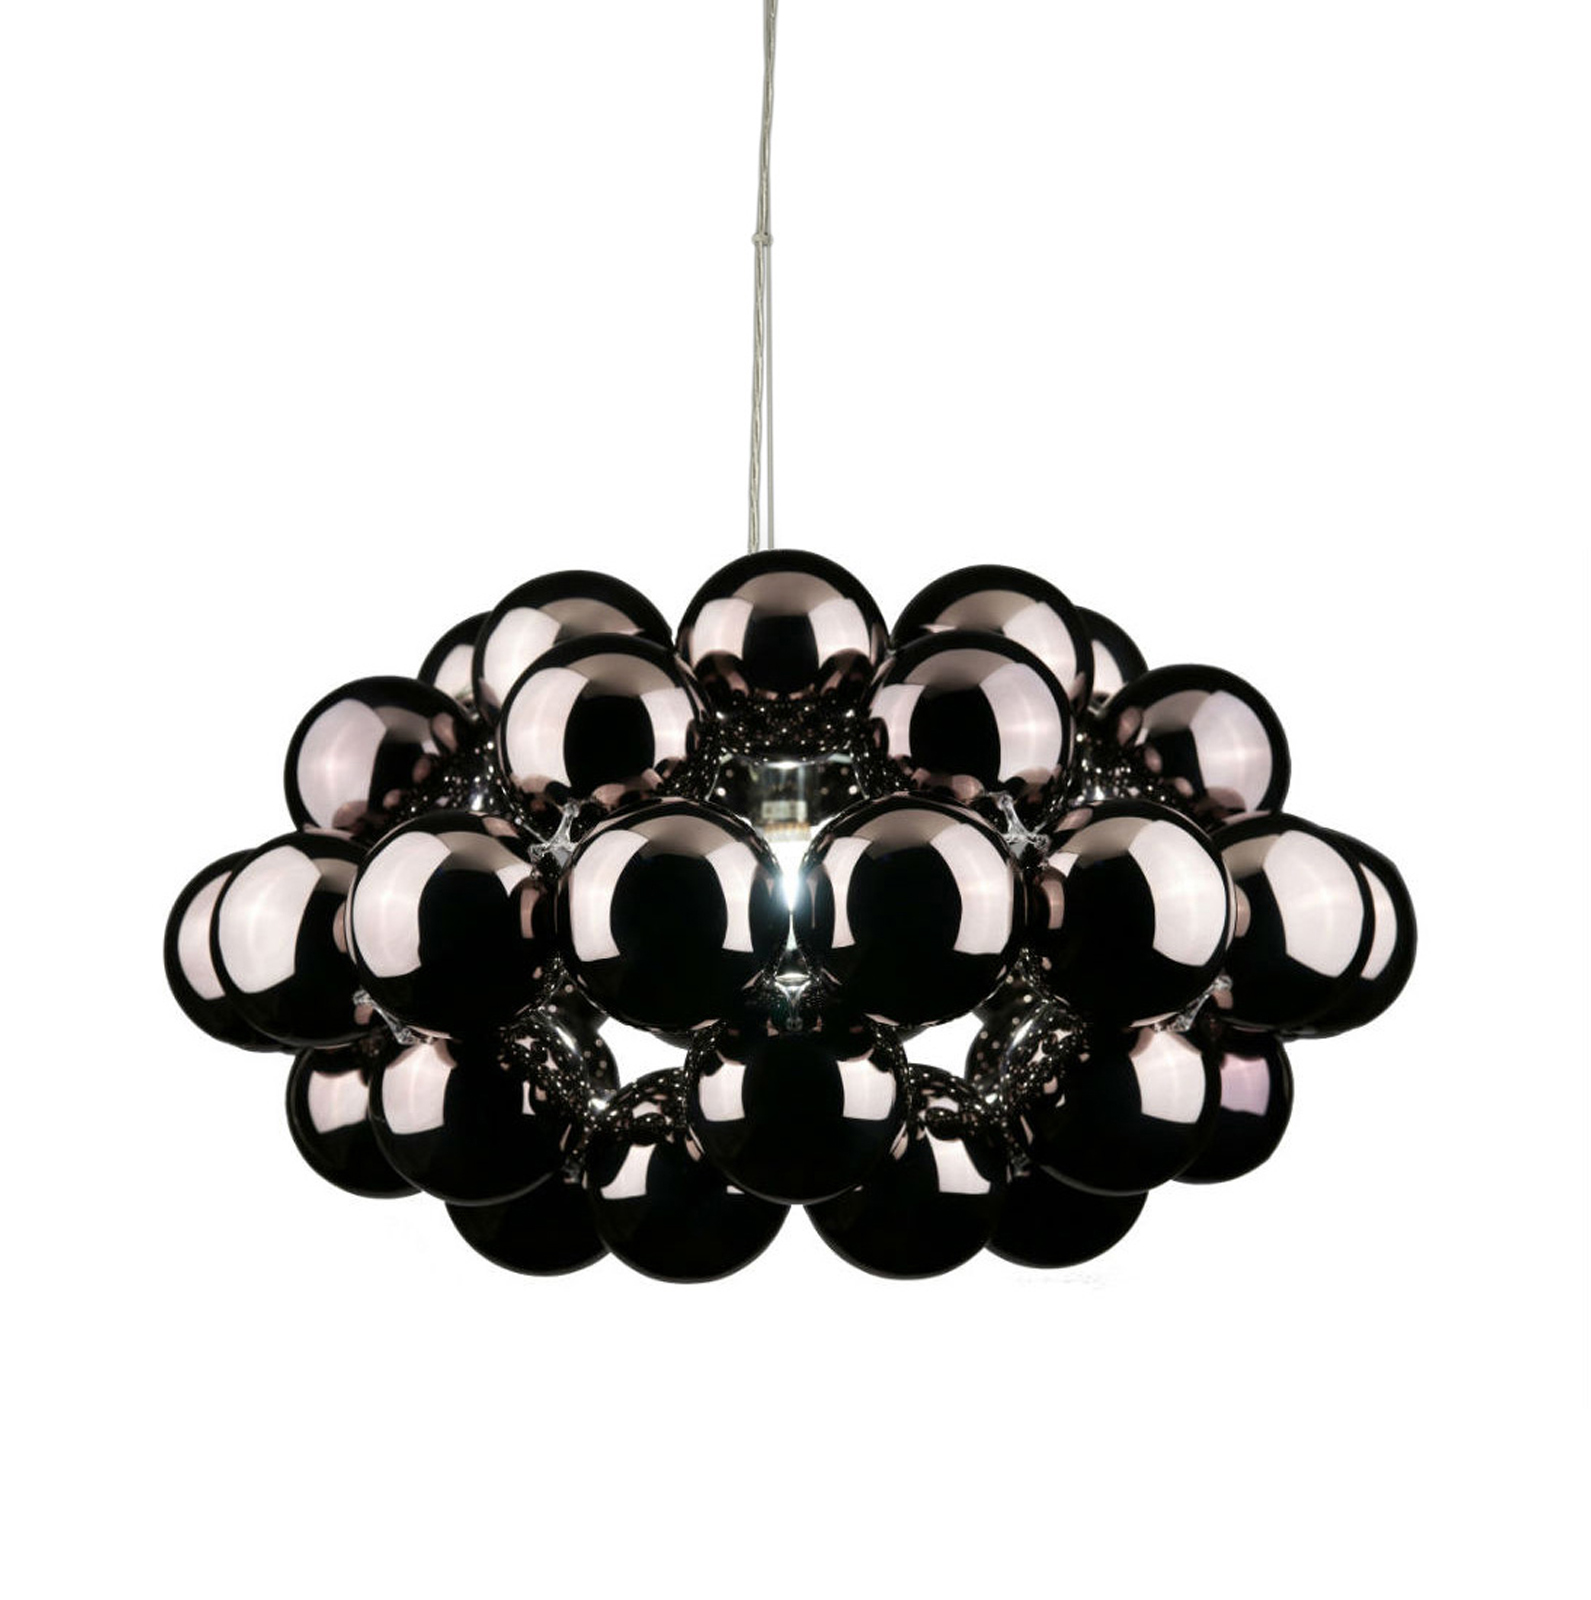 innermost beads octo suspension light buy from campbell. Black Bedroom Furniture Sets. Home Design Ideas